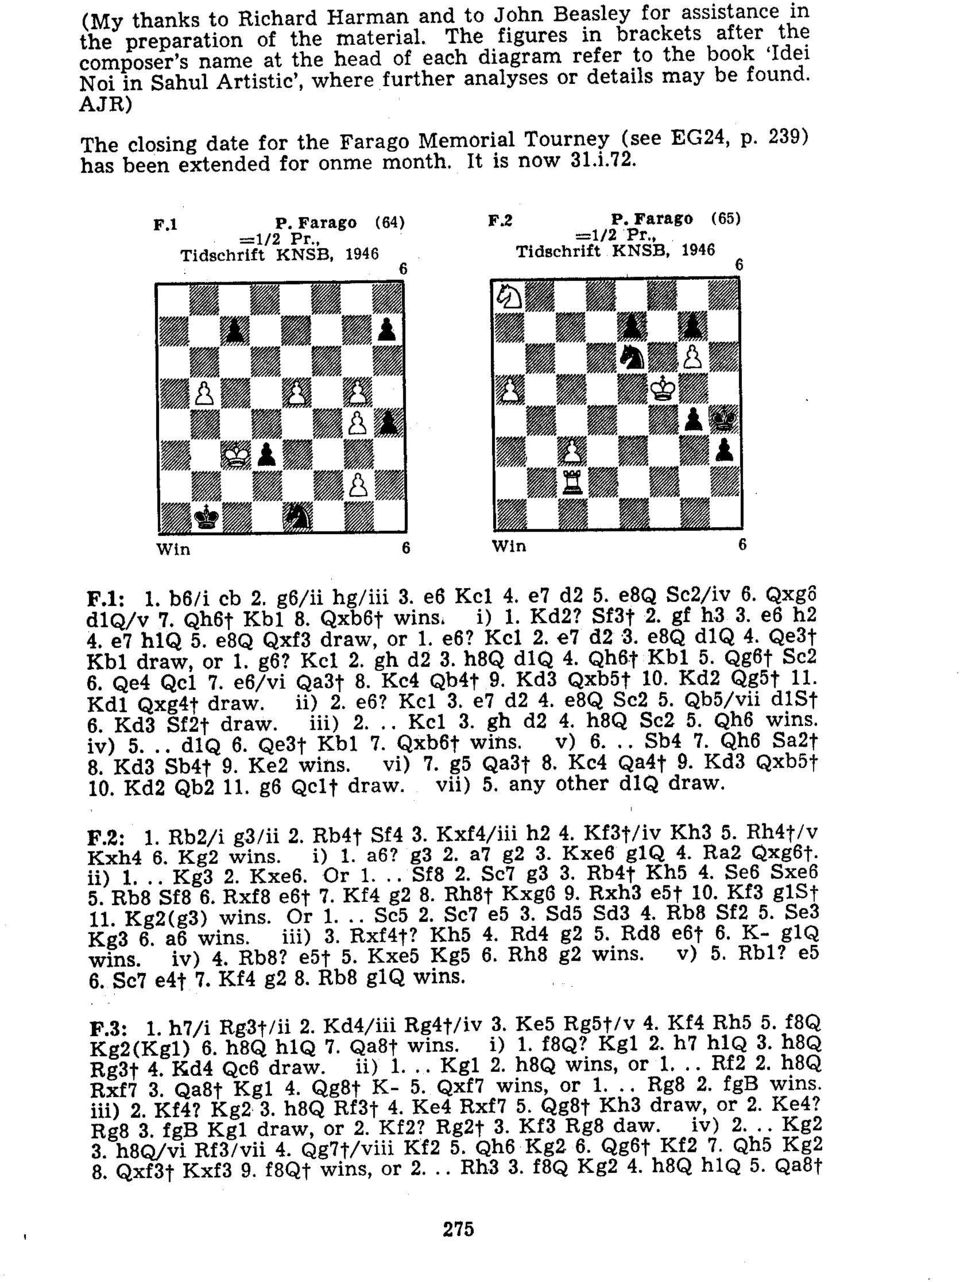 AJR) The closing date for the Farago Memorial Tourney (see EG24, p. 239) has been extended for onme month. It is now 31.i.72. F,1 P. Farago (64) =1/2 Pr., Tidschrift KNSB, 1946 F,2 P.